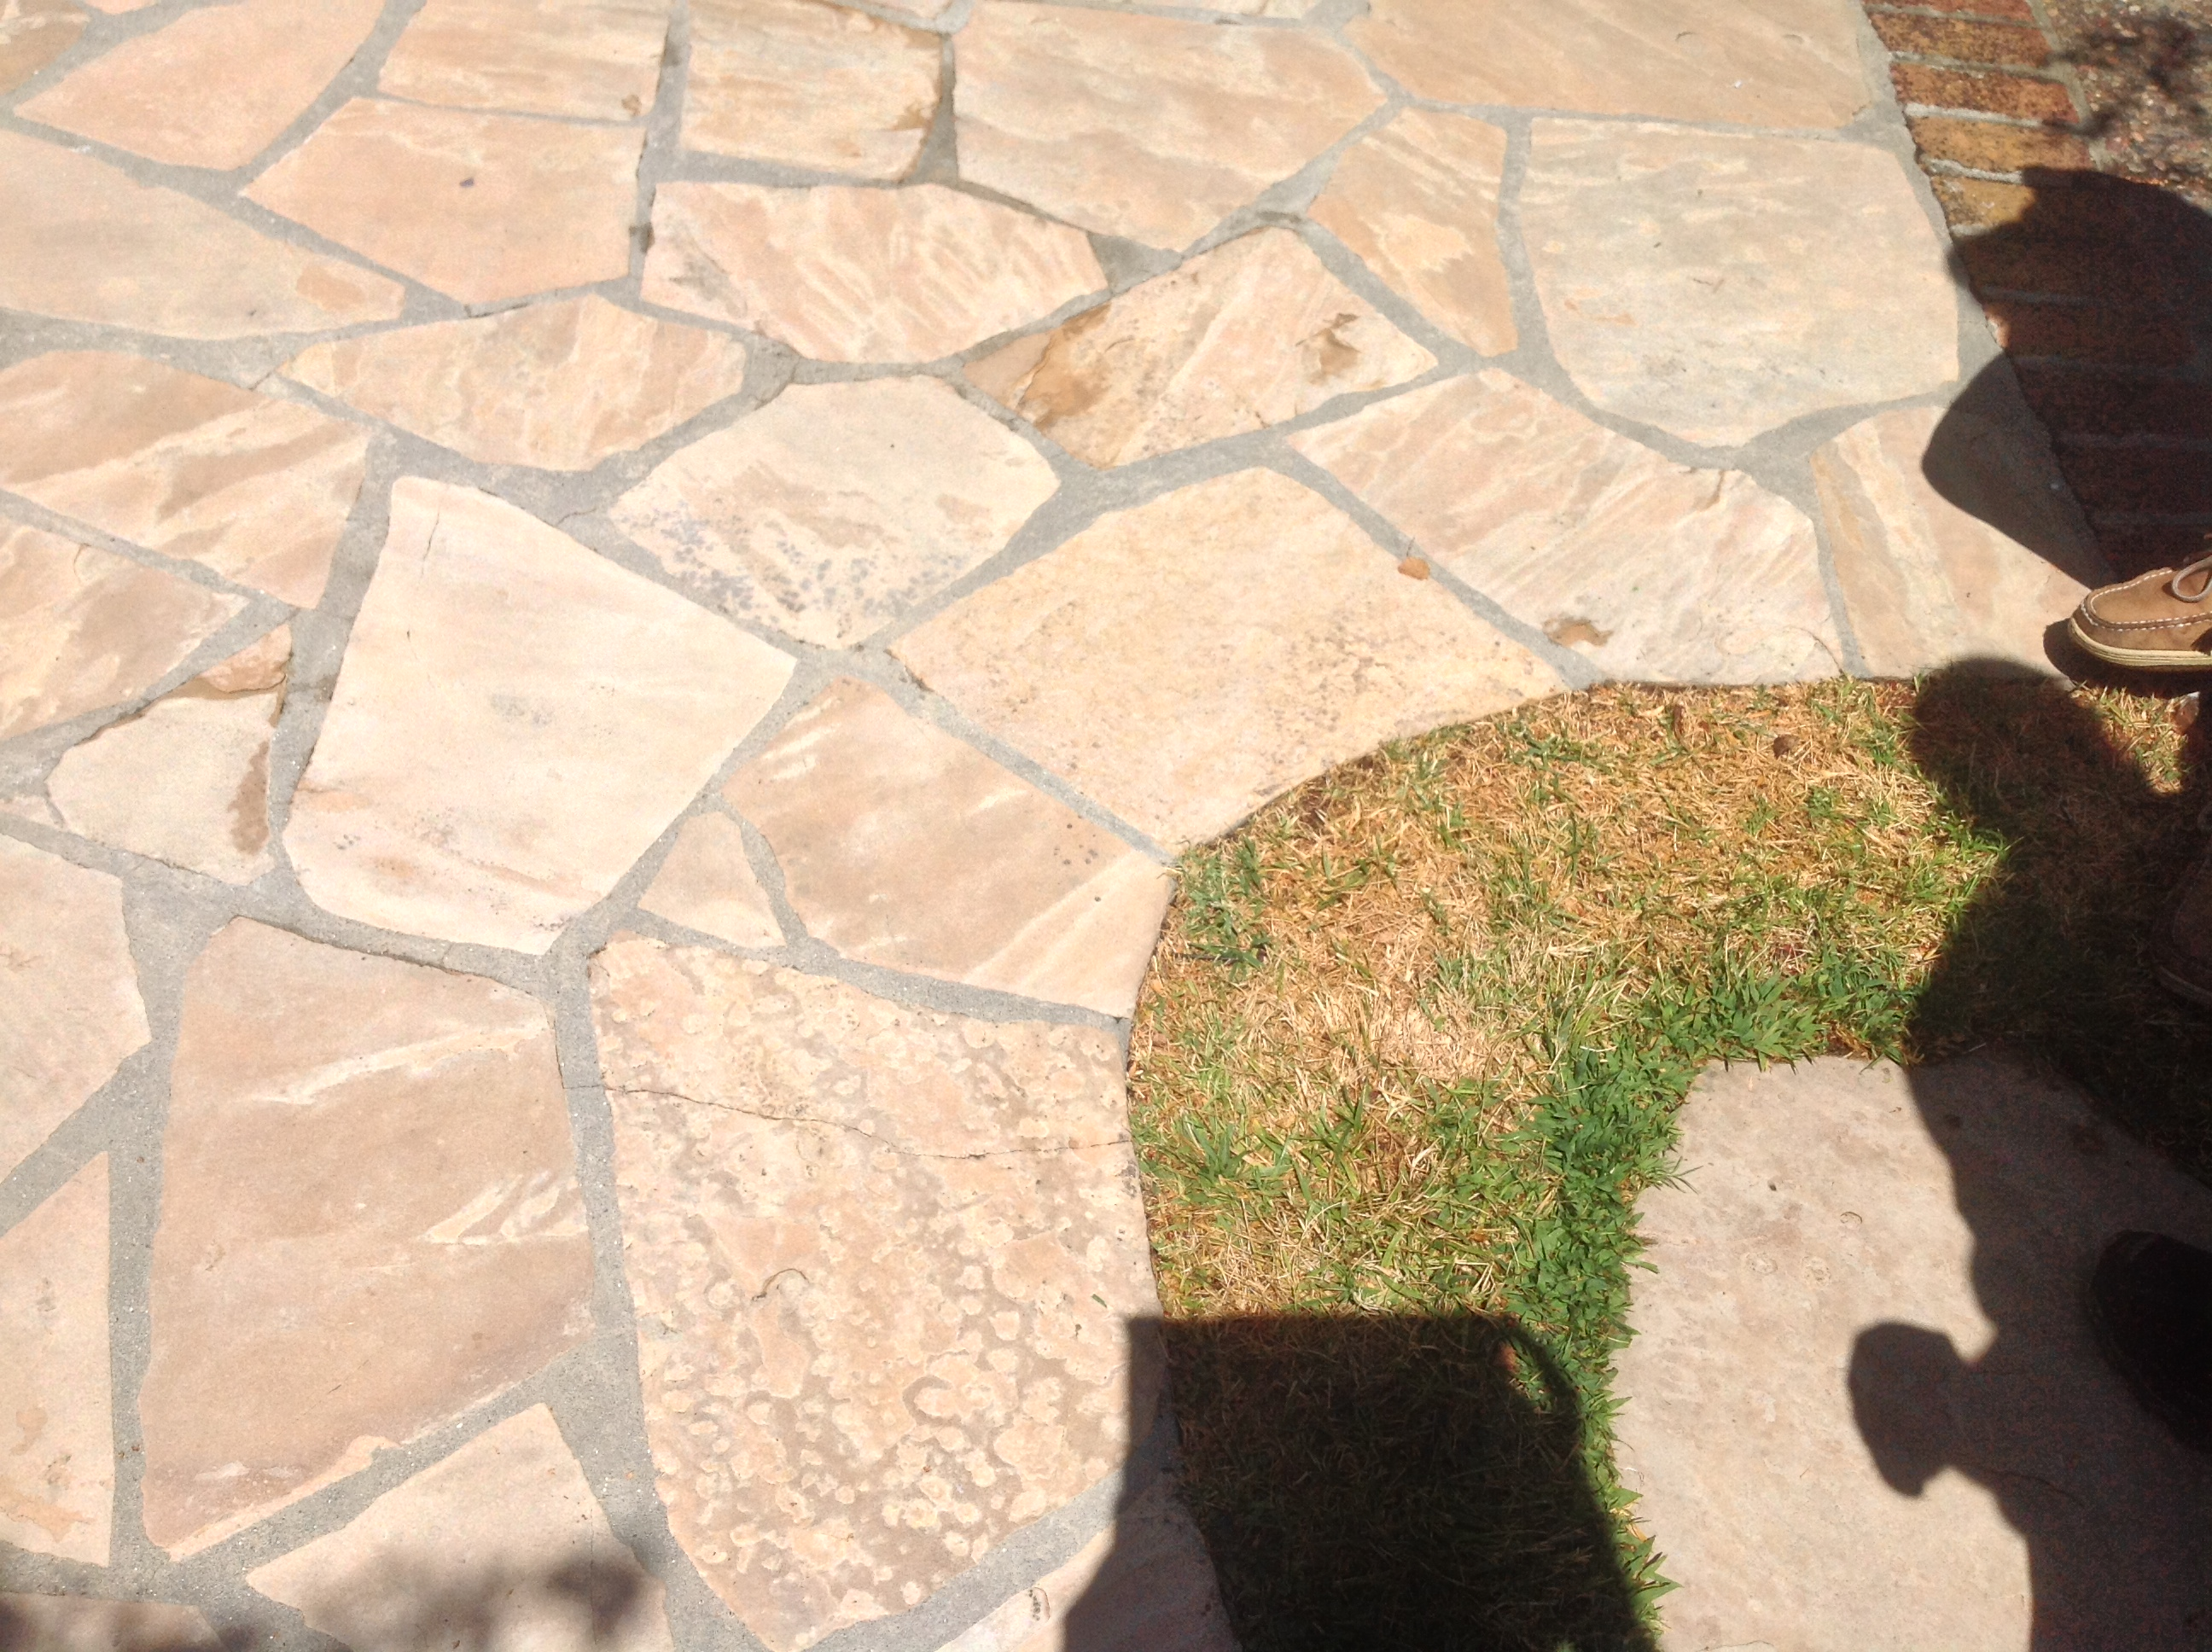 Flagstone Cleaning Clean Patio Flagstone Clean Grout Patio Clean Flagstone  Tiles